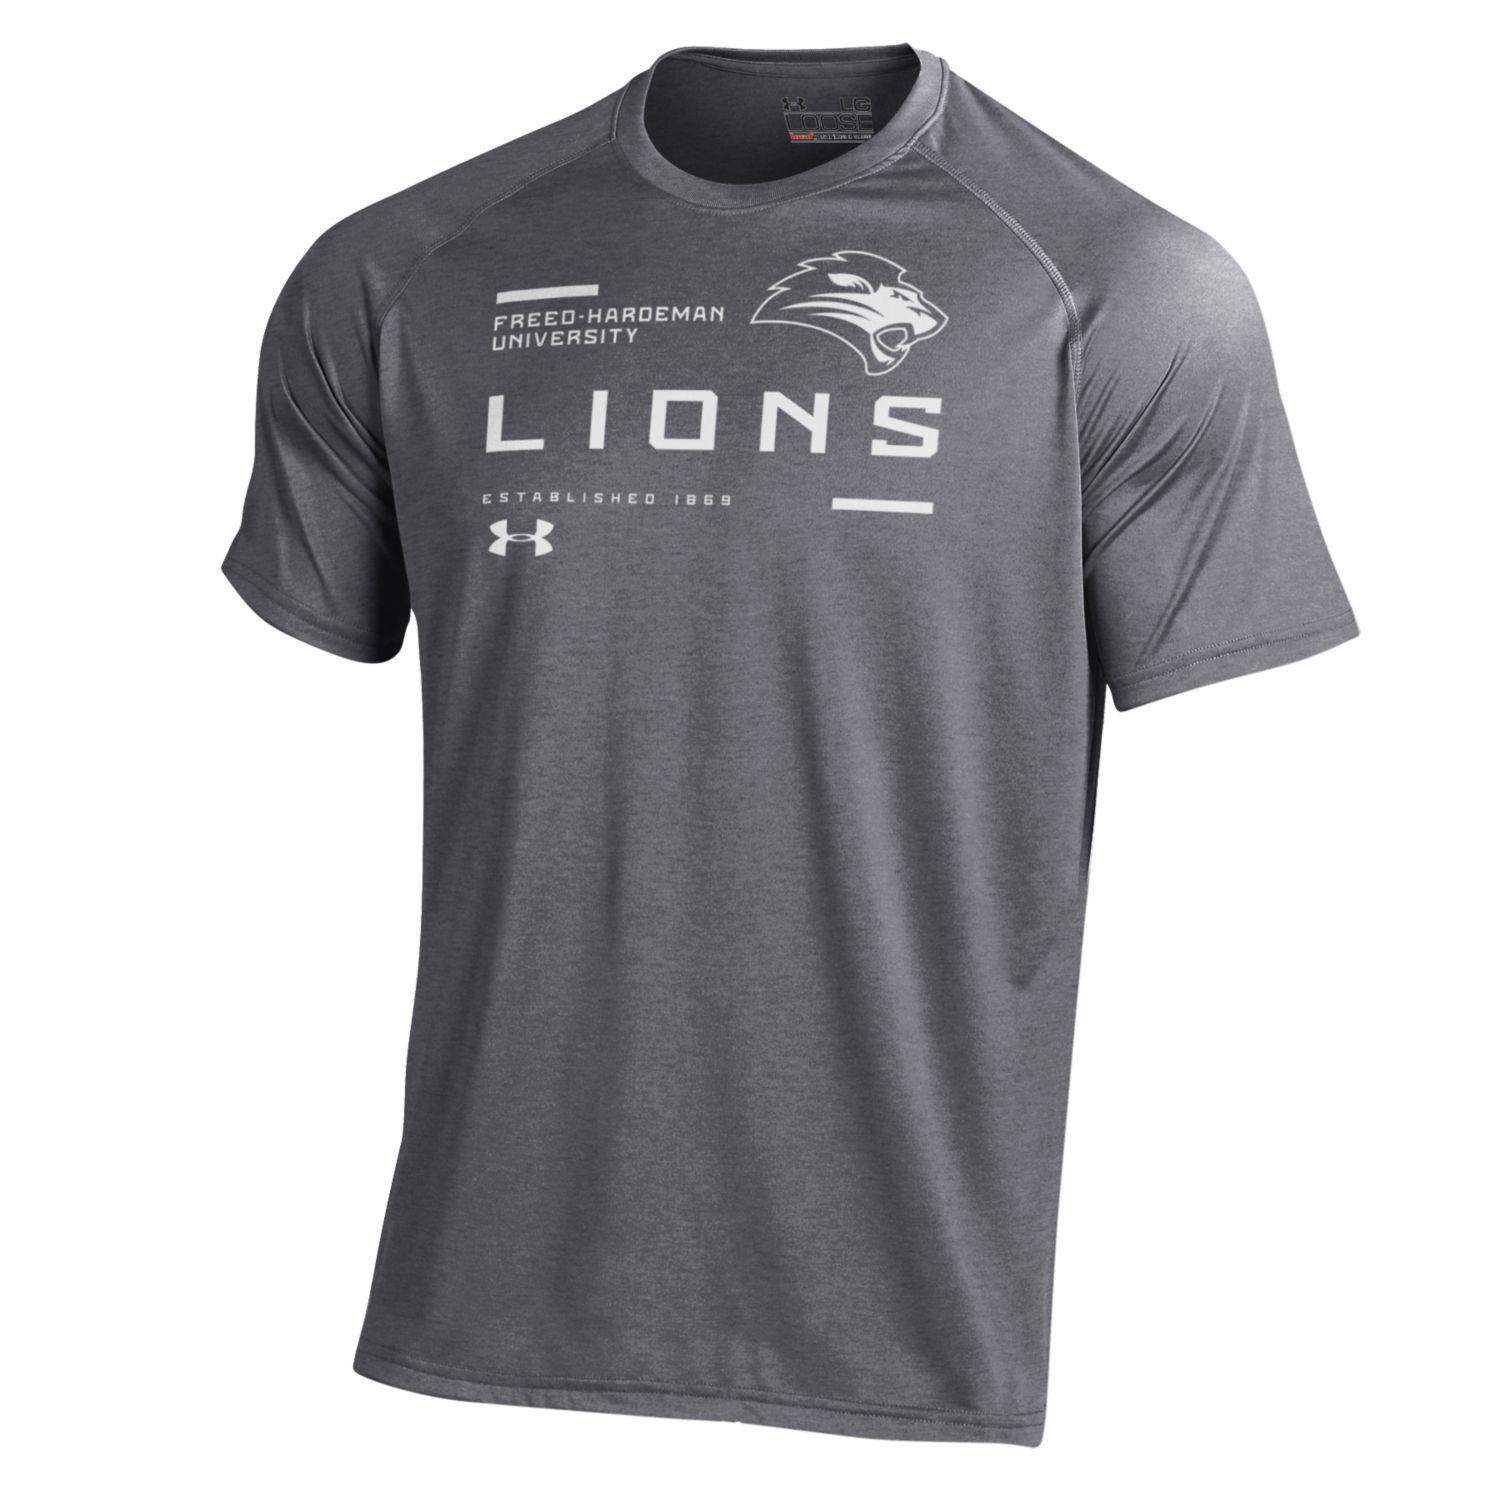 FHU LIONS Under Armour Tee